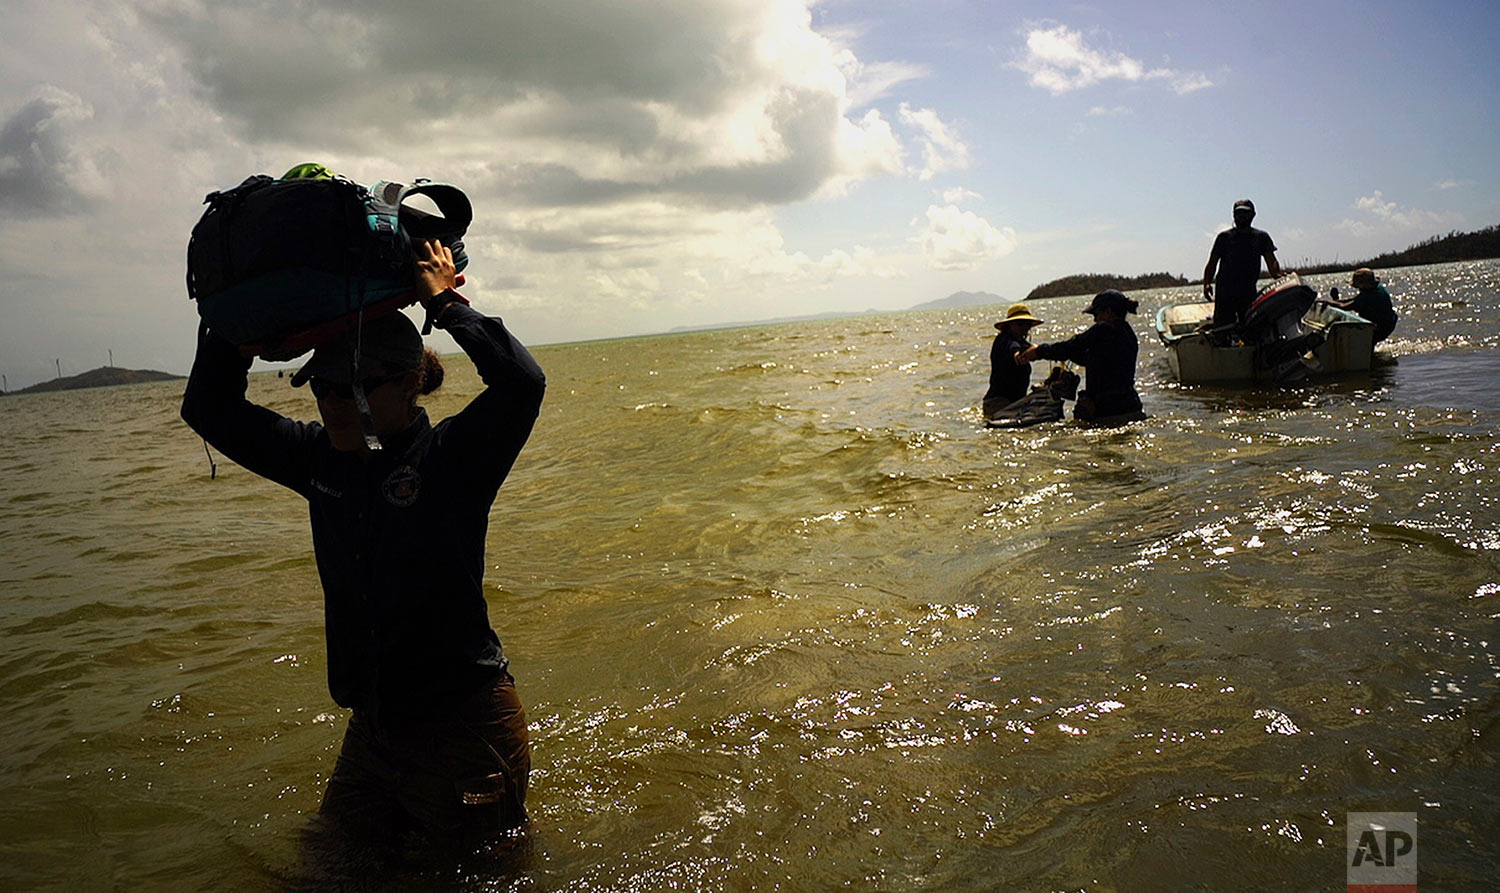 In this screen grab made from video on Wednesday, Oct. 4, 2017, scientists return to land from Cayo Santiago, known as Monkey Island, in Puerto Rico, one of the world's most important sites for research into how primates think, socialize and evolve. (AP Photo/Ramon Espinosa)